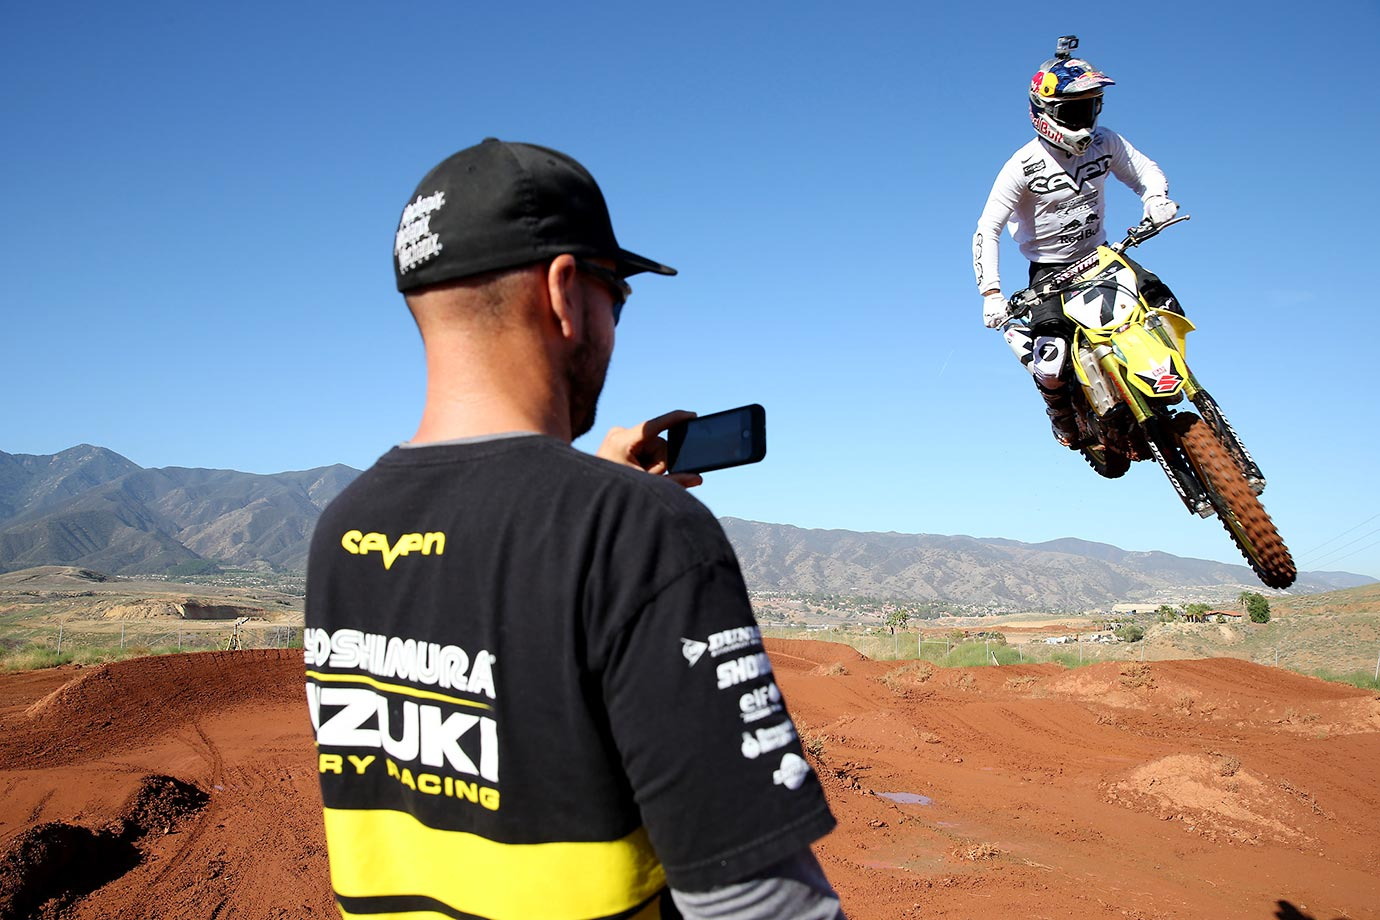 Stewart is timed and filmed by members of his Suzuki team during practice.